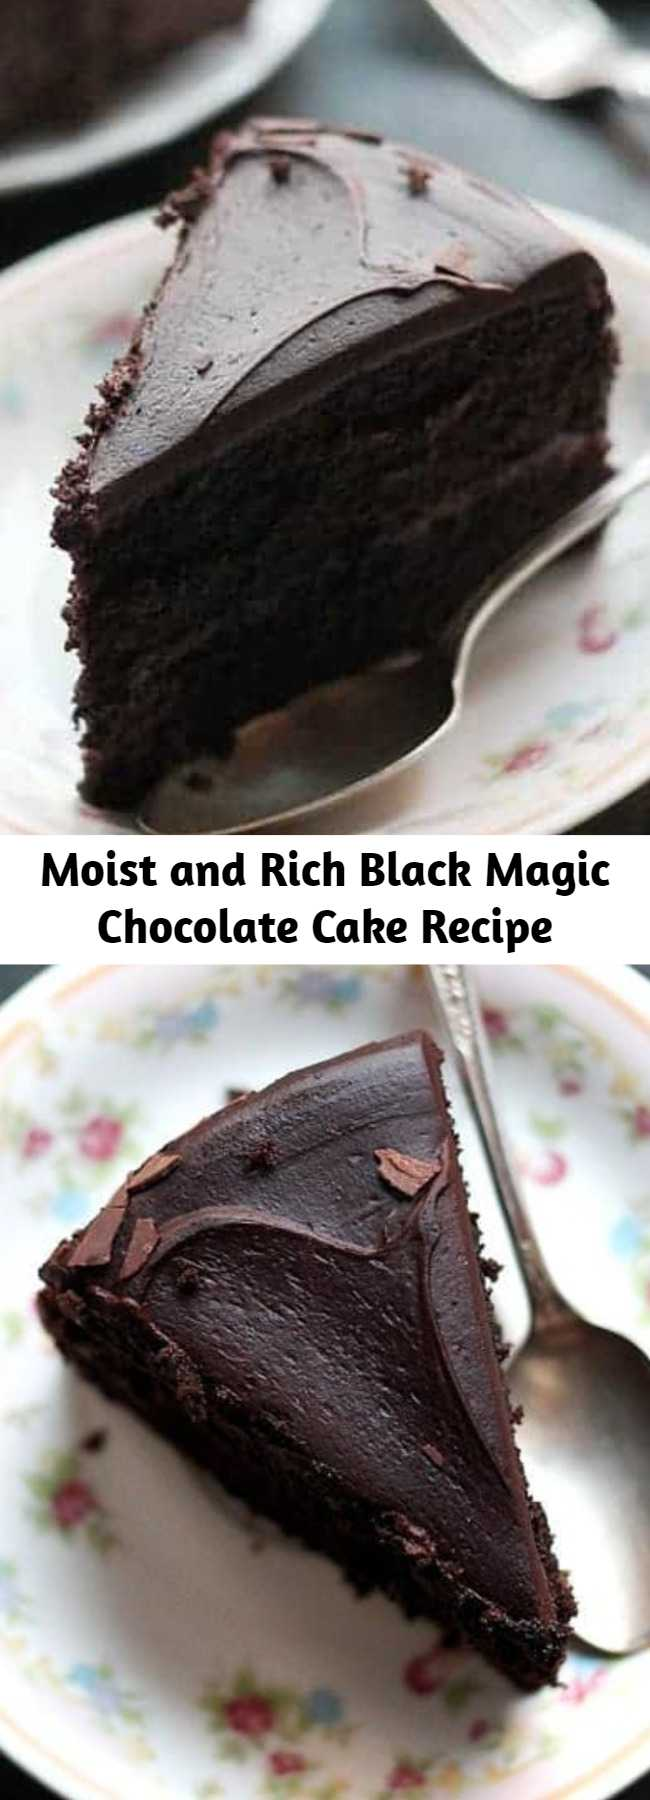 Moist and Rich Black Magic Chocolate Cake Recipe - This is my go-to chocolate cake recipe. Moist, rich, and delicious dark chocolate cake that's perfect for the Holidays, or any other occasion! Perfect for Valentine's Day!